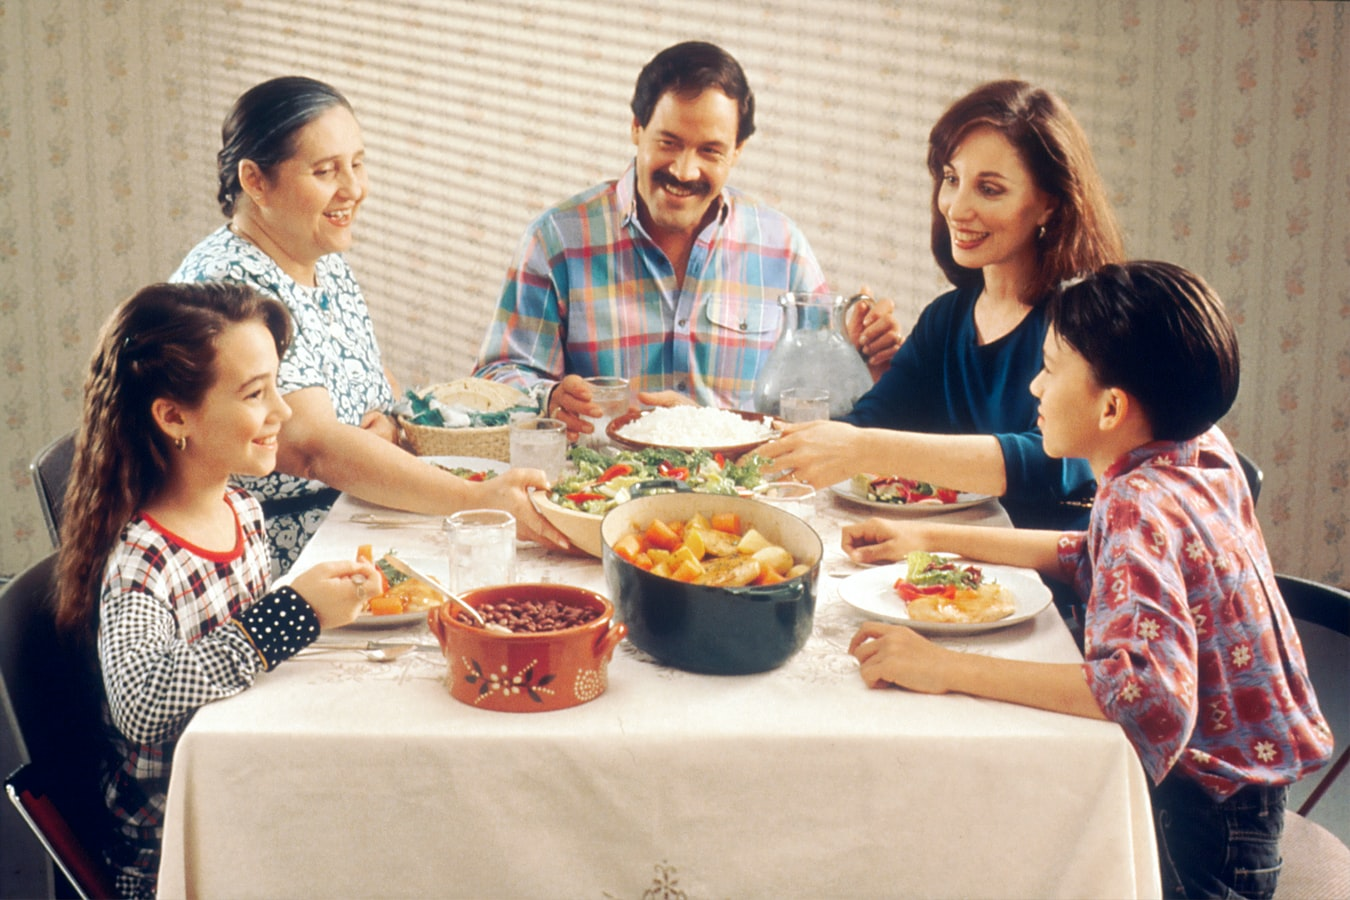 Family-meal-Unspl